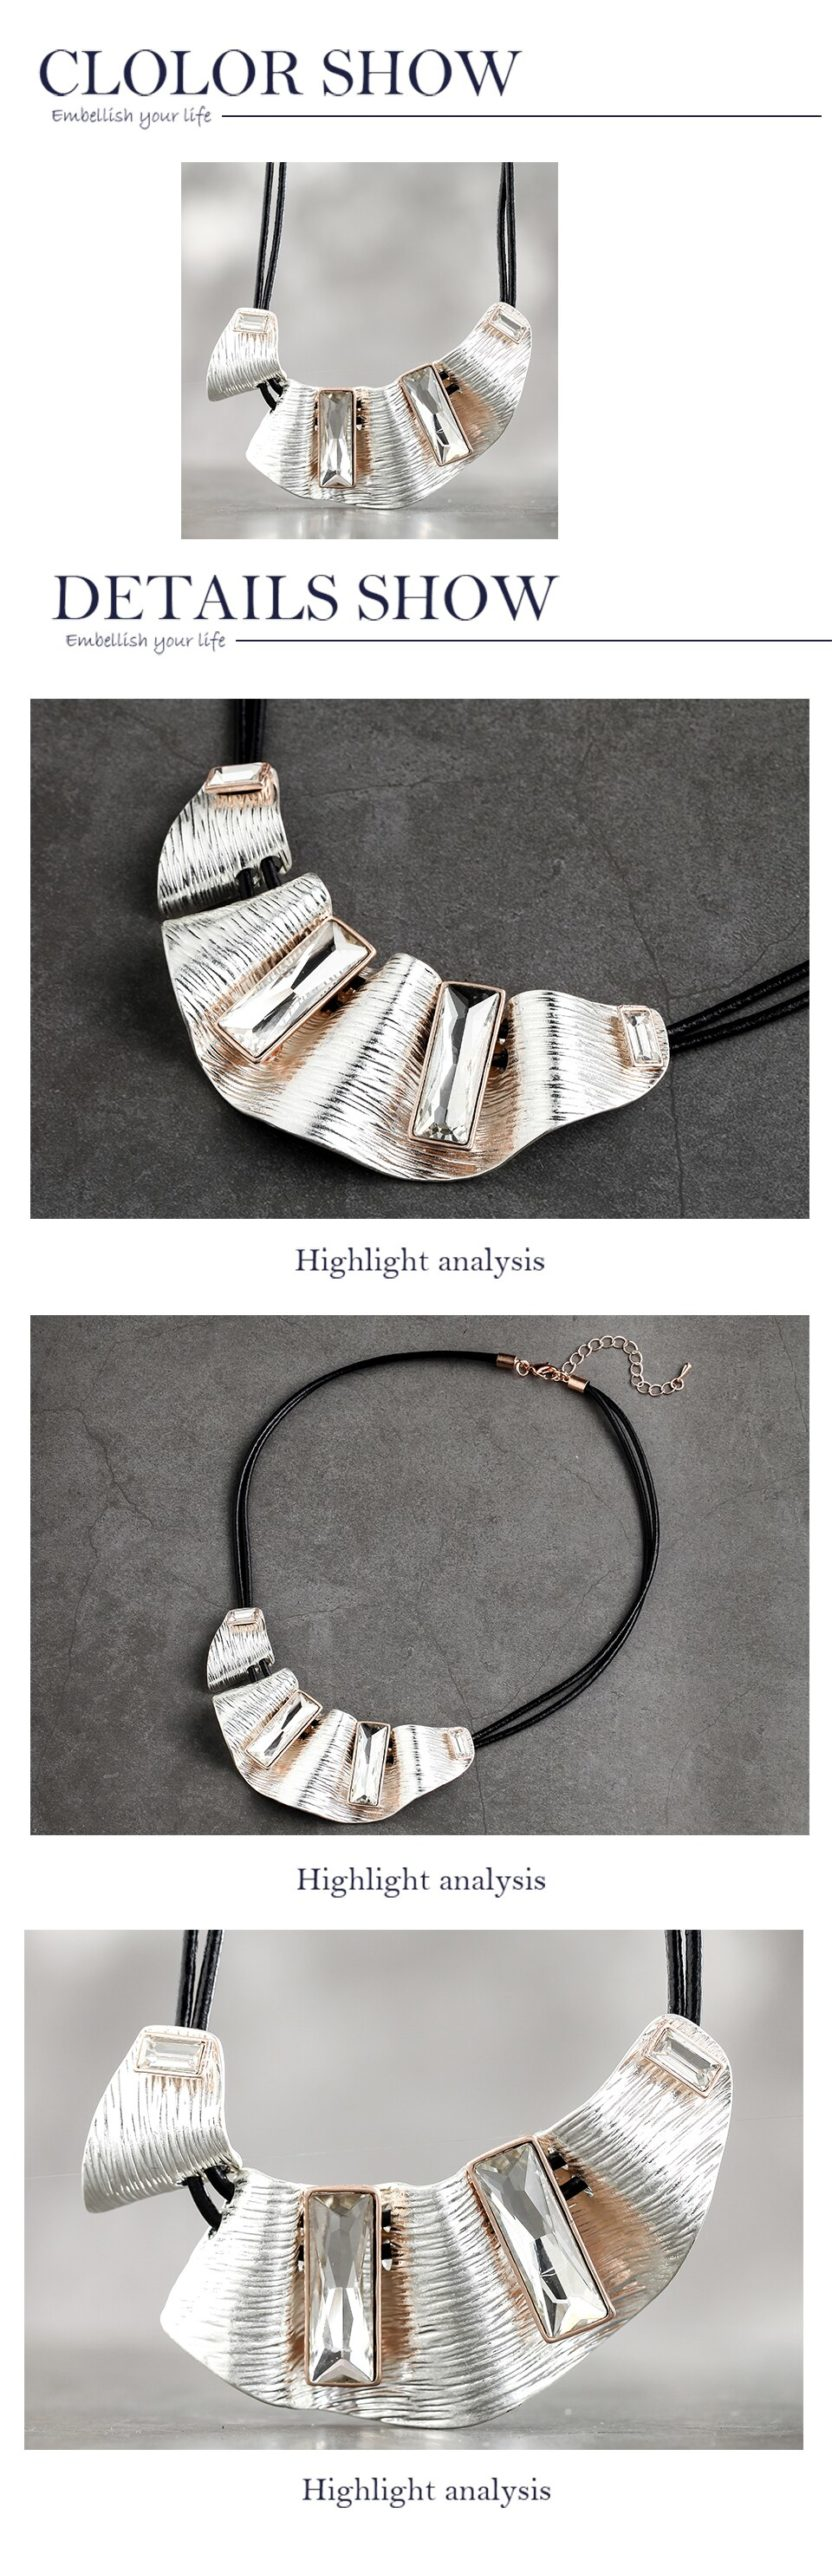 Statement Jewelry for Women Chunky Leather Choker Necklaces Geometric Vintage Big Pendant Chain Collar Wholesale 2020 Hotsale